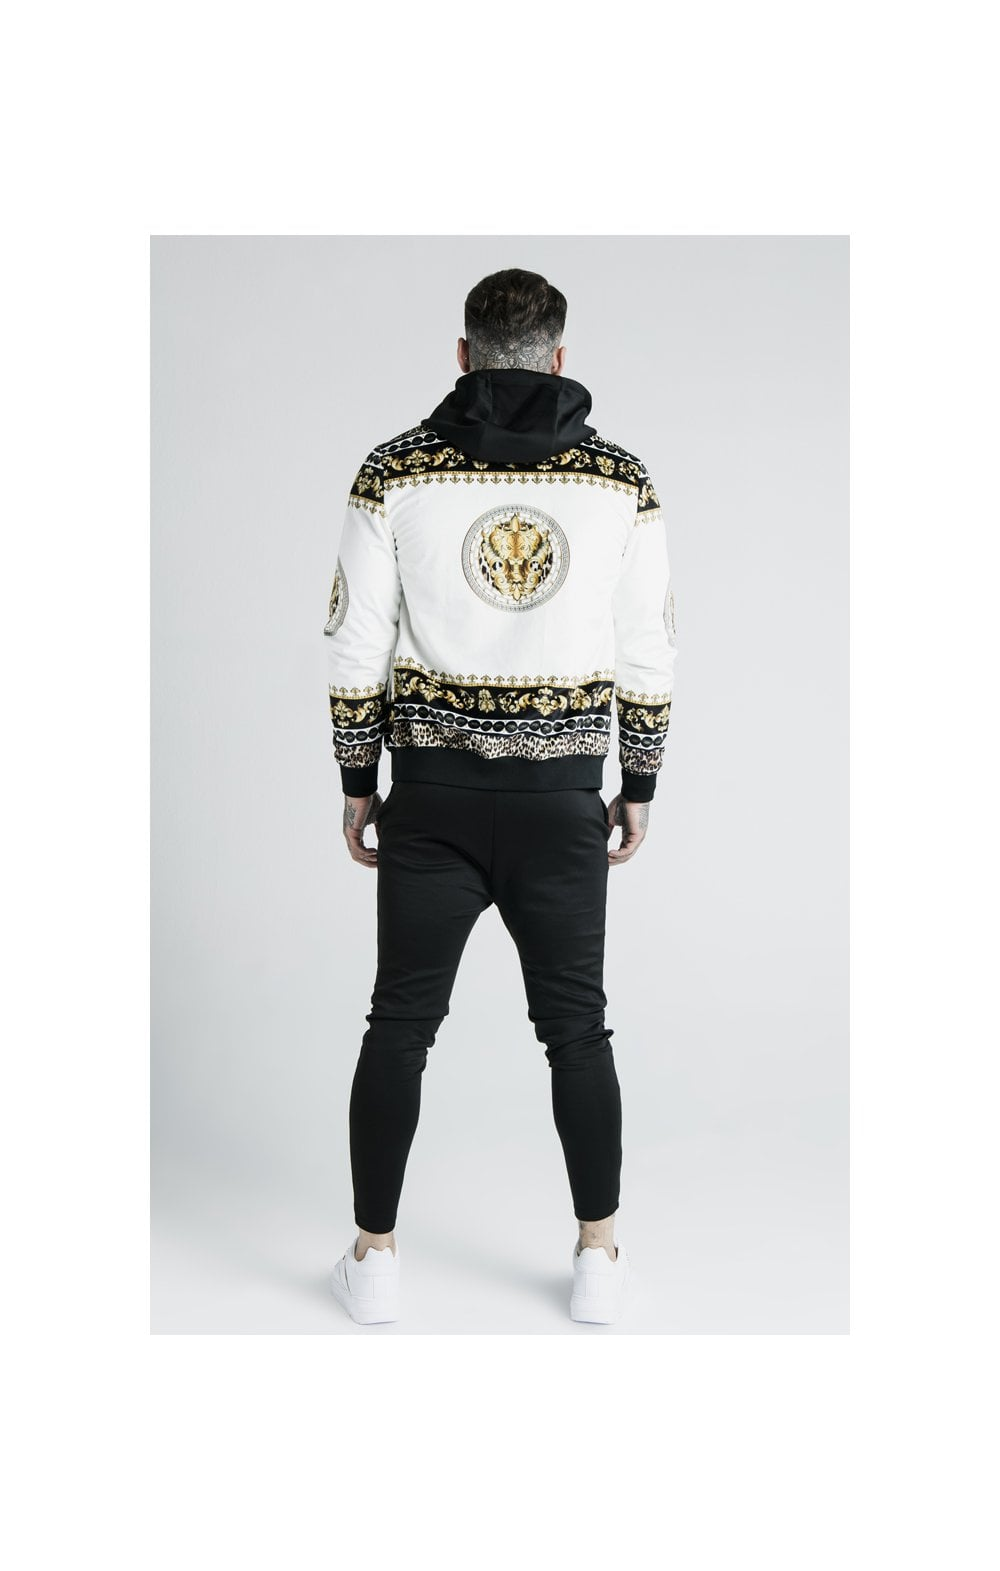 Load image into Gallery viewer, SikSilk x Dani Alves Bomber Jacket - Black, Off White & Gold (5)